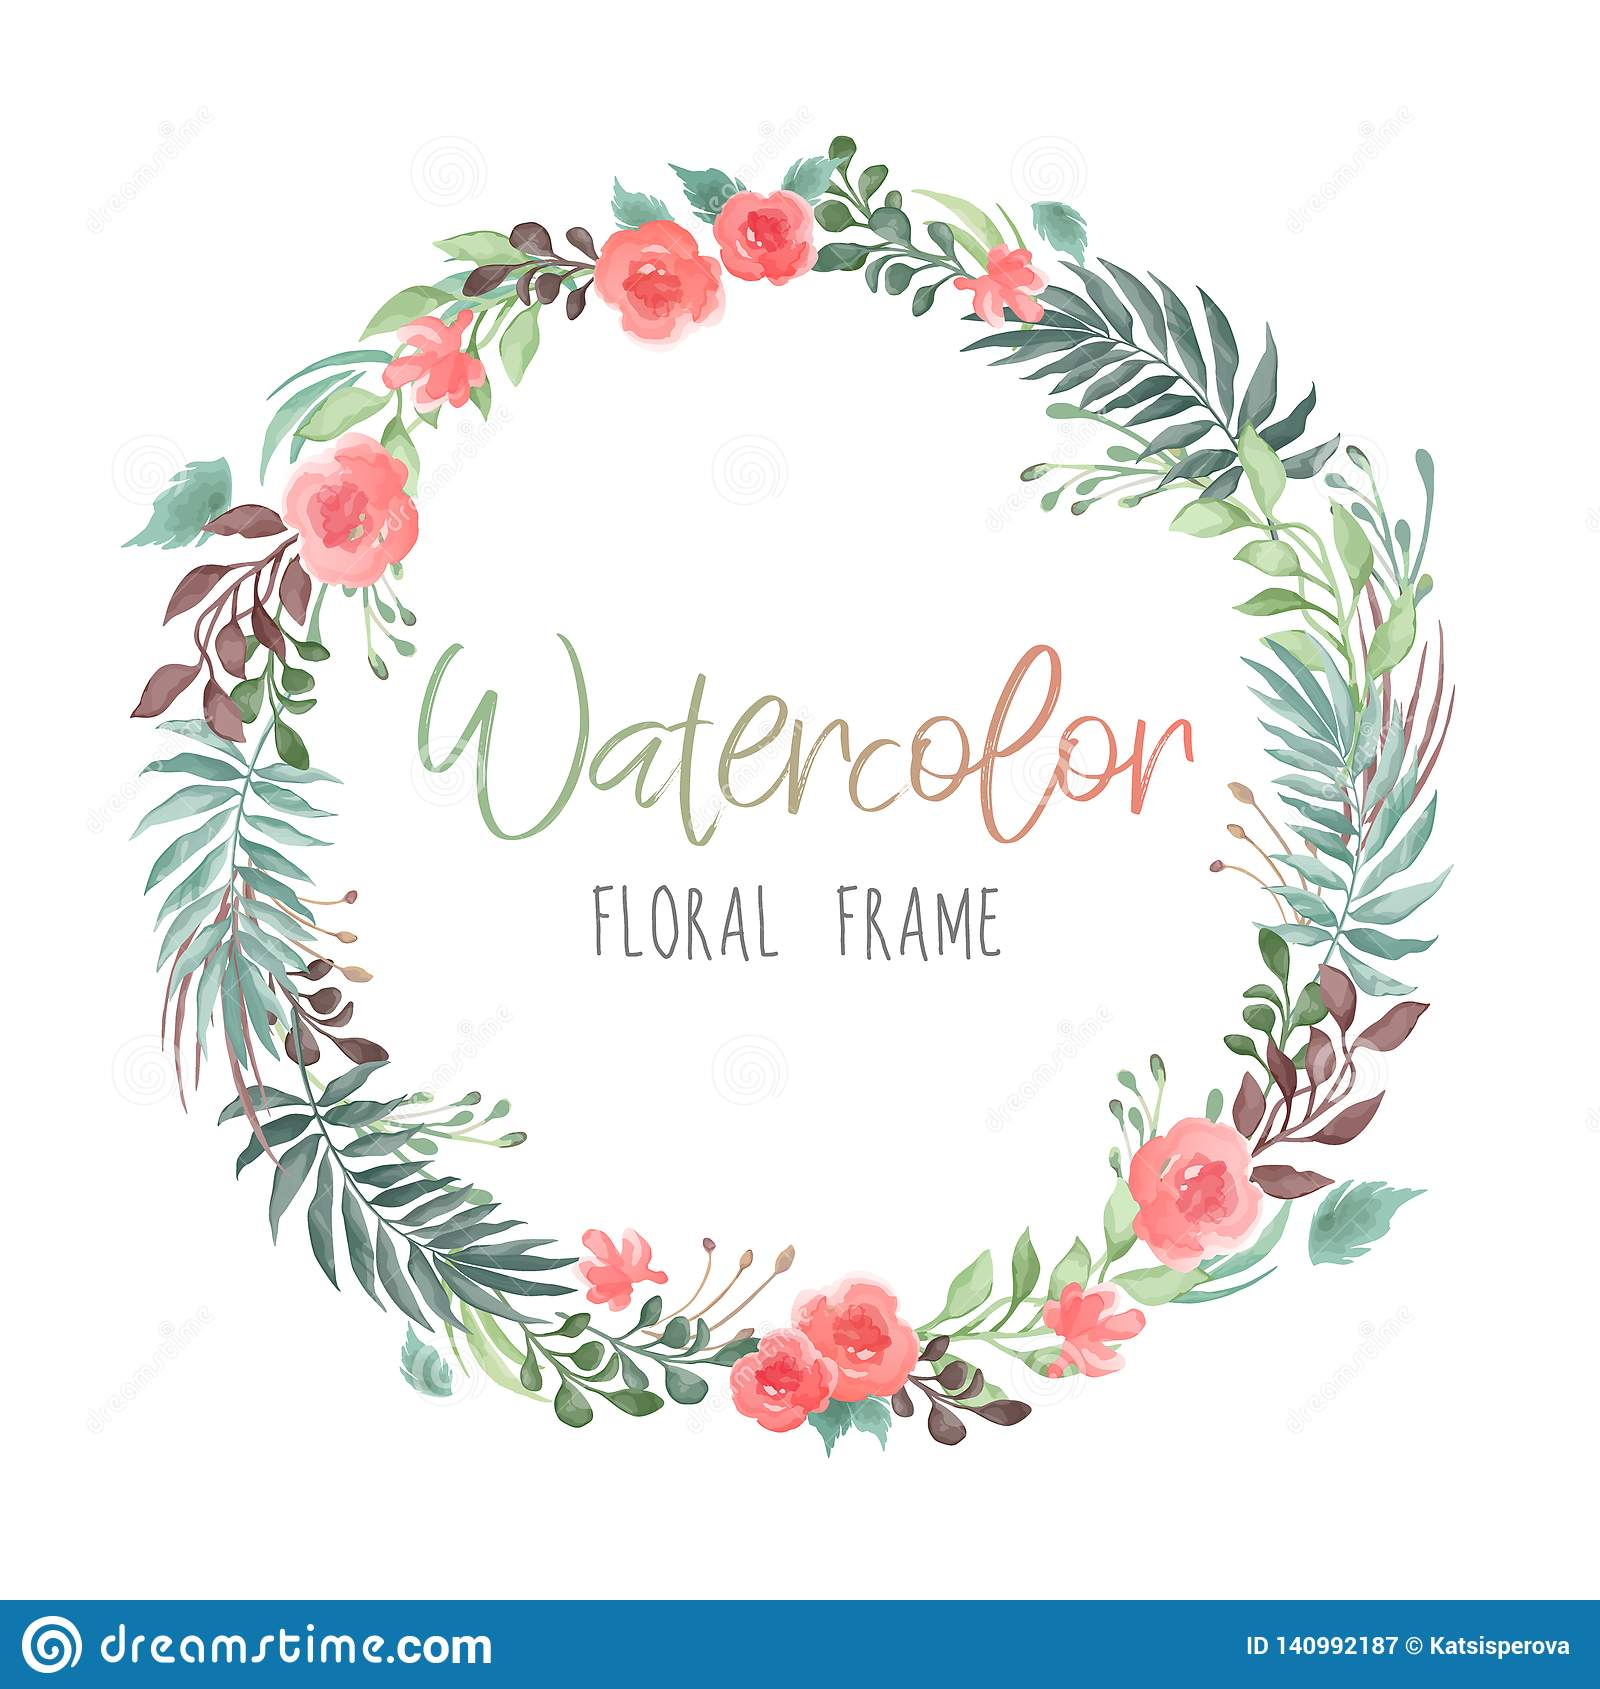 Vector romantic round floral frame with plants and flowers in watercolor style isolated on white background - great for invitation